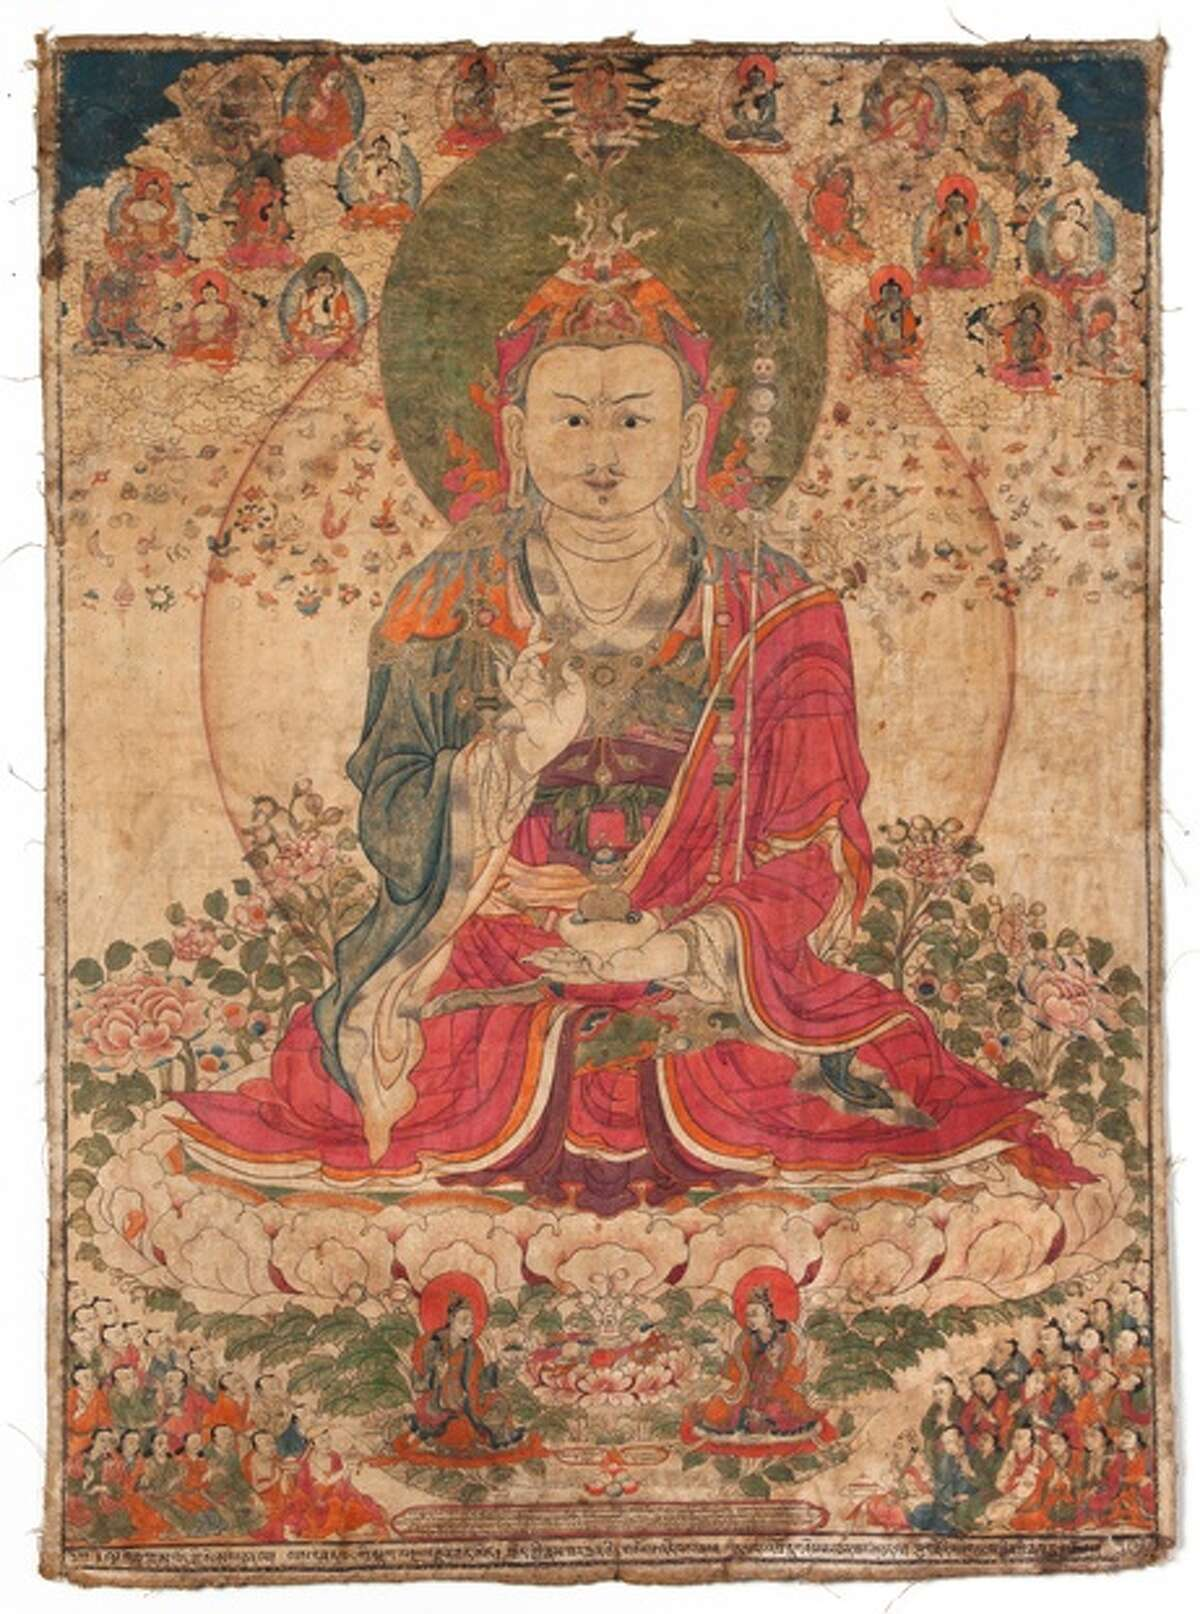 """Artist unknown (Tibet), """"Padmasambhava,"""" 19th century, pigment on cloth, 28 1/4 x 20 inches, image courtesy of the Ruben Museum of Art (from tang.skidmore.edu)"""